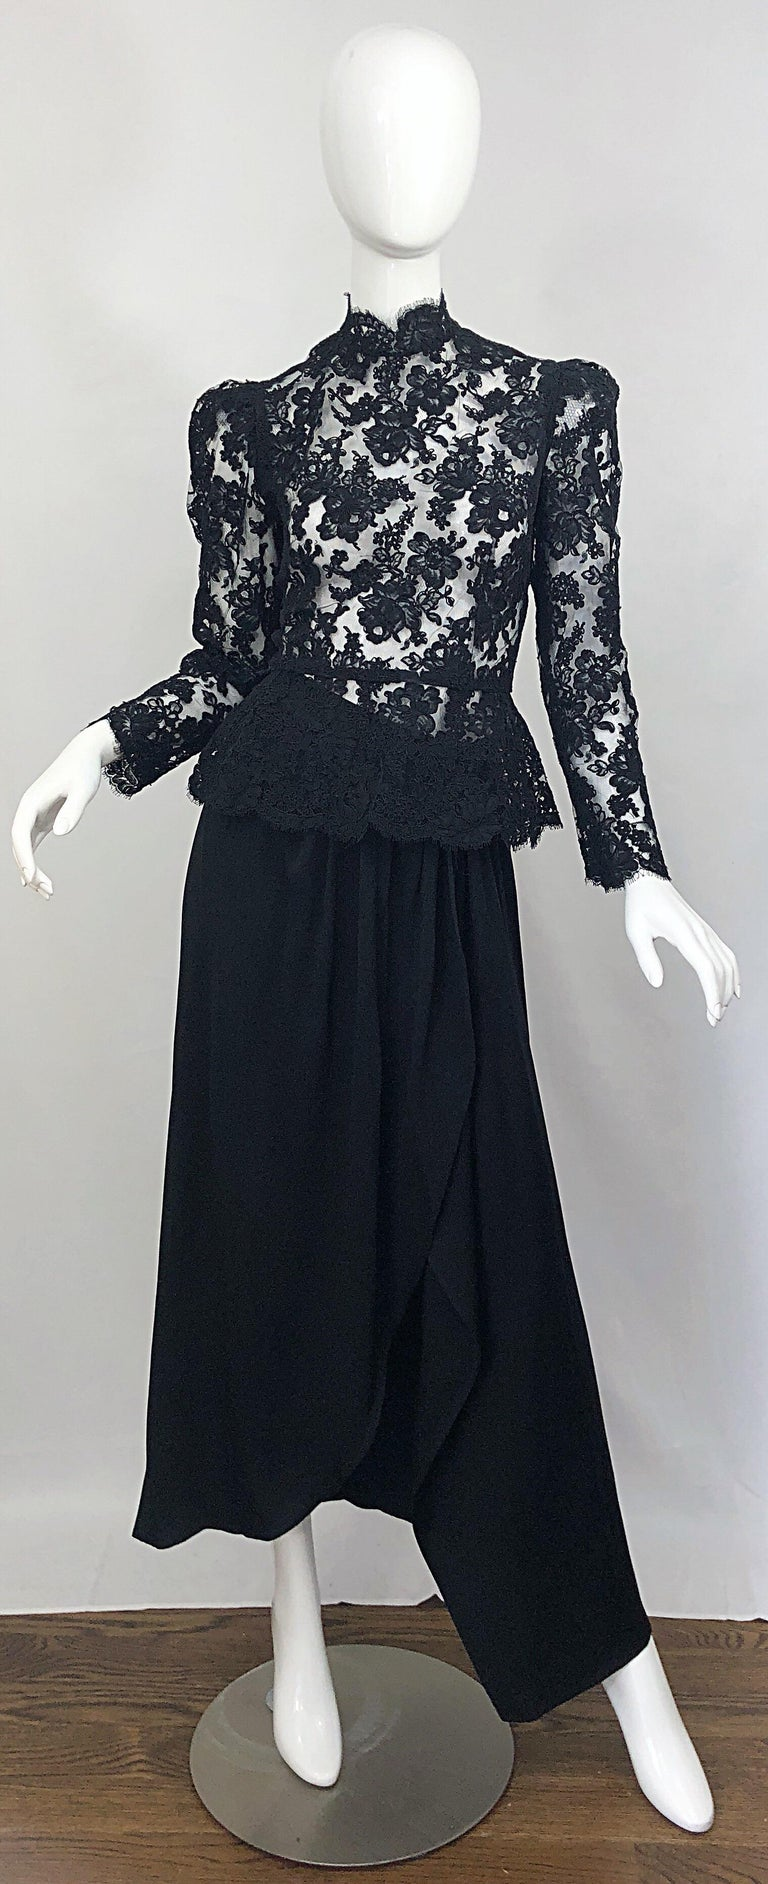 Incredible vintage 80s VICKY TIEL COUTURE black lace and rayon semi sheer blouse and asymmetrical maxi skirt evening gown. ensemble! Victorian inspired lace top features puff sleeves, with an elegant high neck. Full hidden zipper up the back with